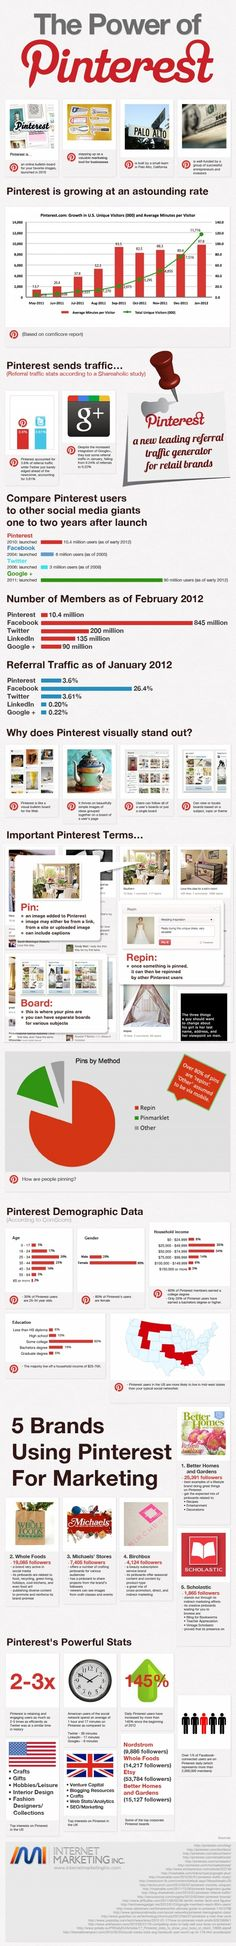 Pinterest stats & benefits